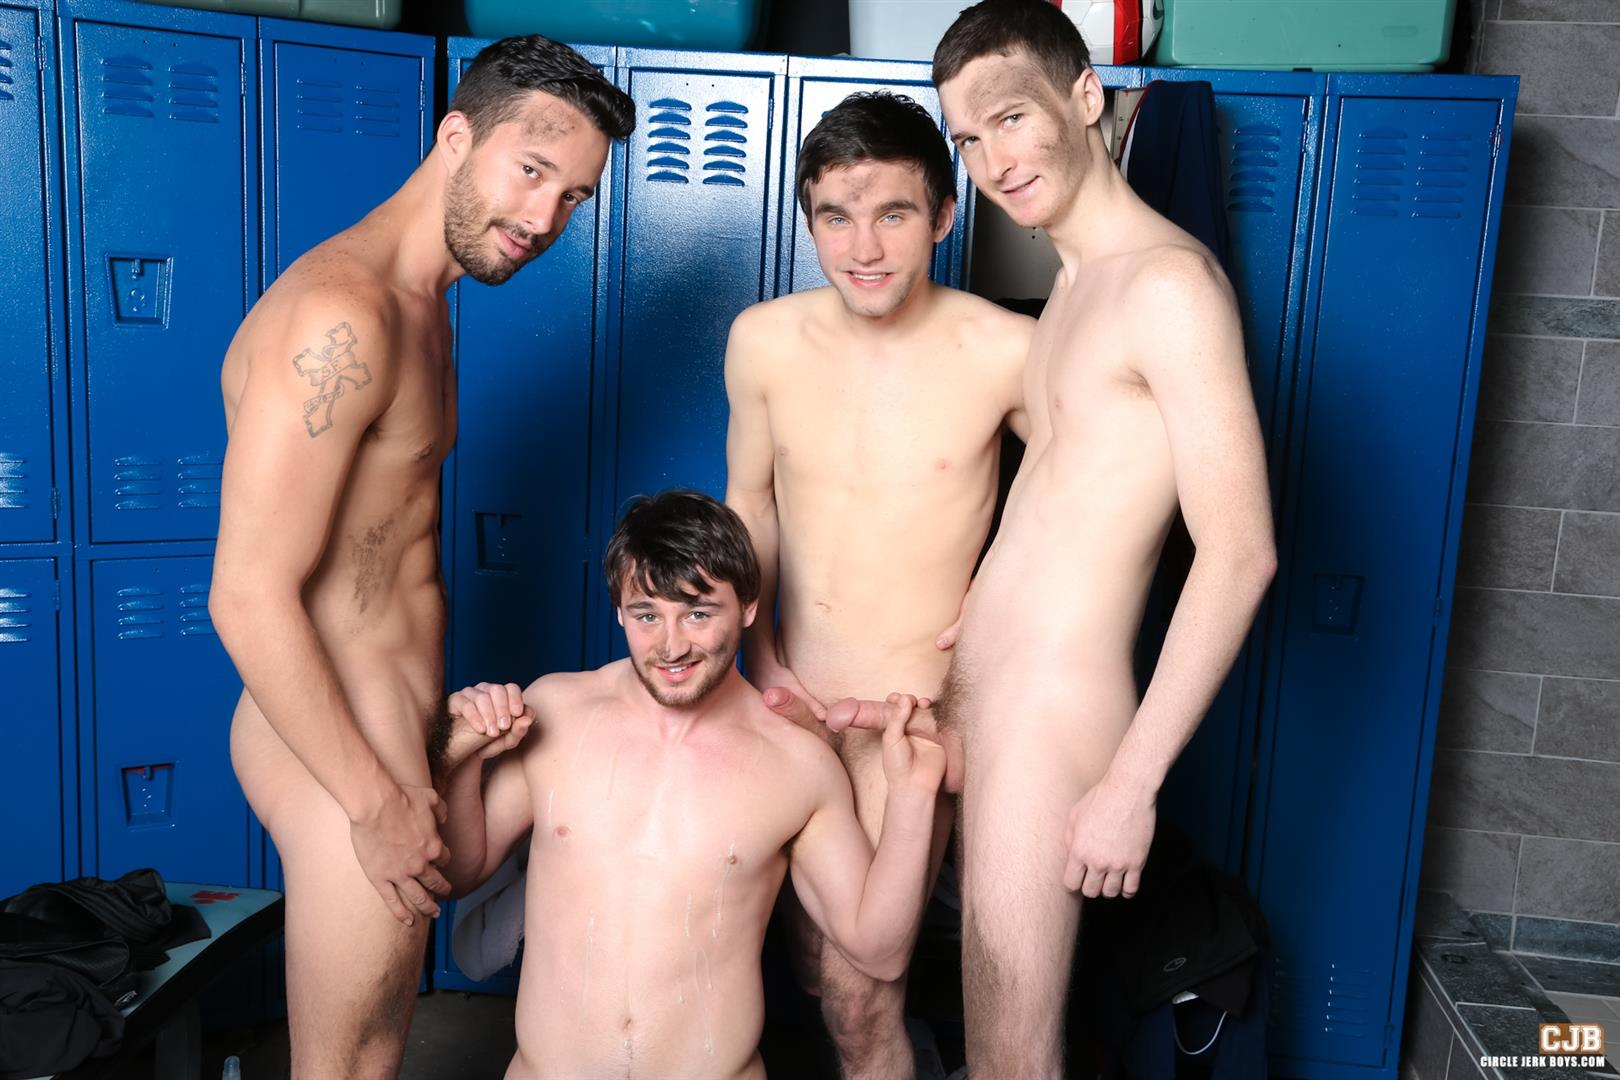 Circle Jerk Boys Andrew Collins and Isaac Hardy and Josh Pierce and Scott Harbor Soccer Guys Sucking Cock Amateur Gay Porn 14 After the Game, Soccer Plays Sucking Cock In The Locker Room